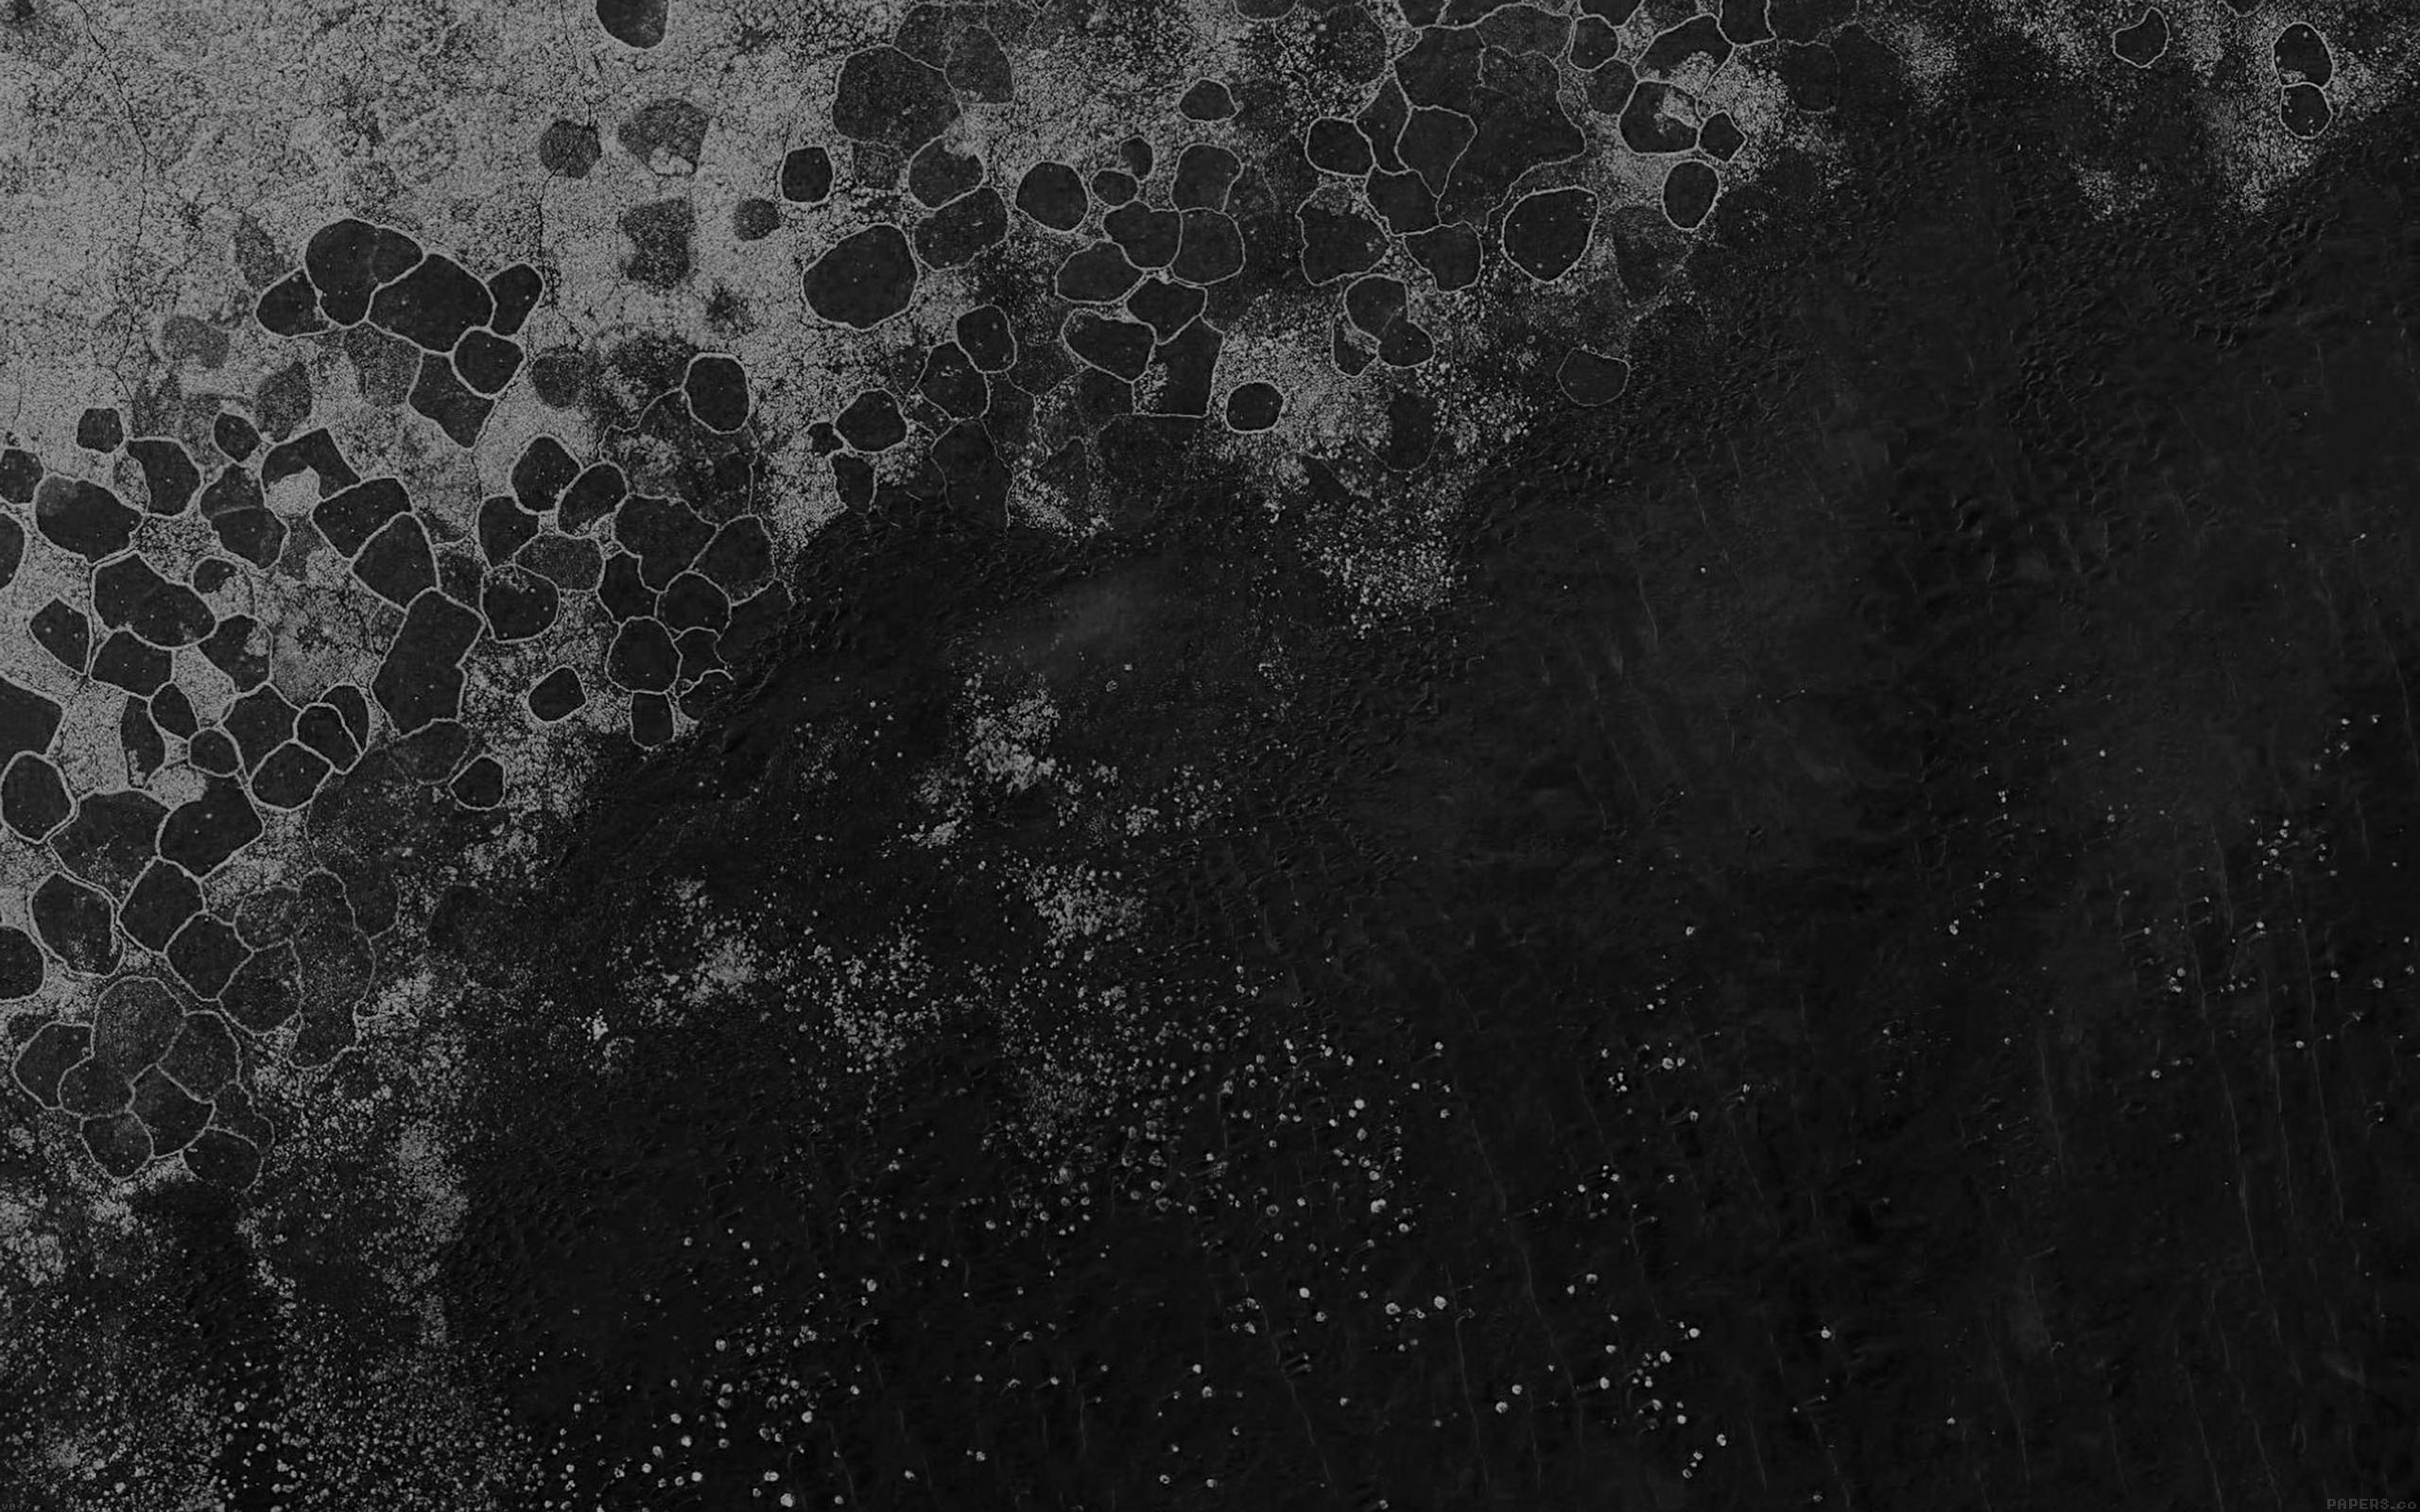 1080p Wallpapers Car Vd47 Earth View Black Texture Android Lollipop Pattern